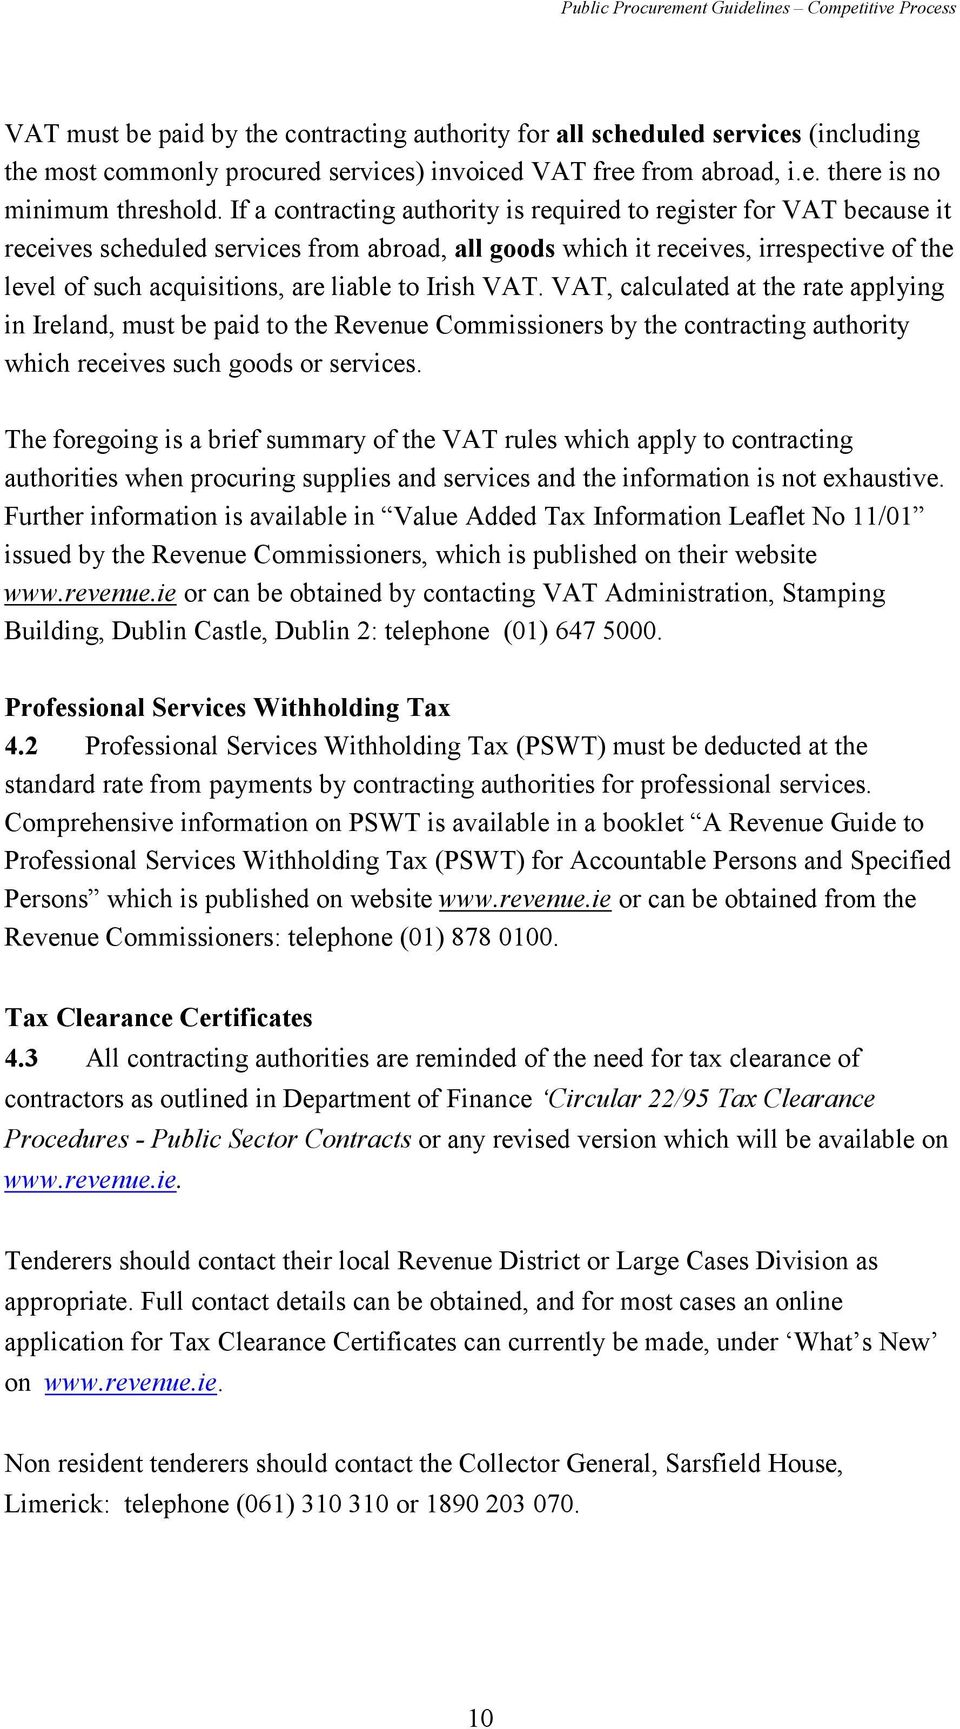 to Irish VAT. VAT, calculated at the rate applying in Ireland, must be paid to the Revenue Commissioners by the contracting authority which receives such goods or services.